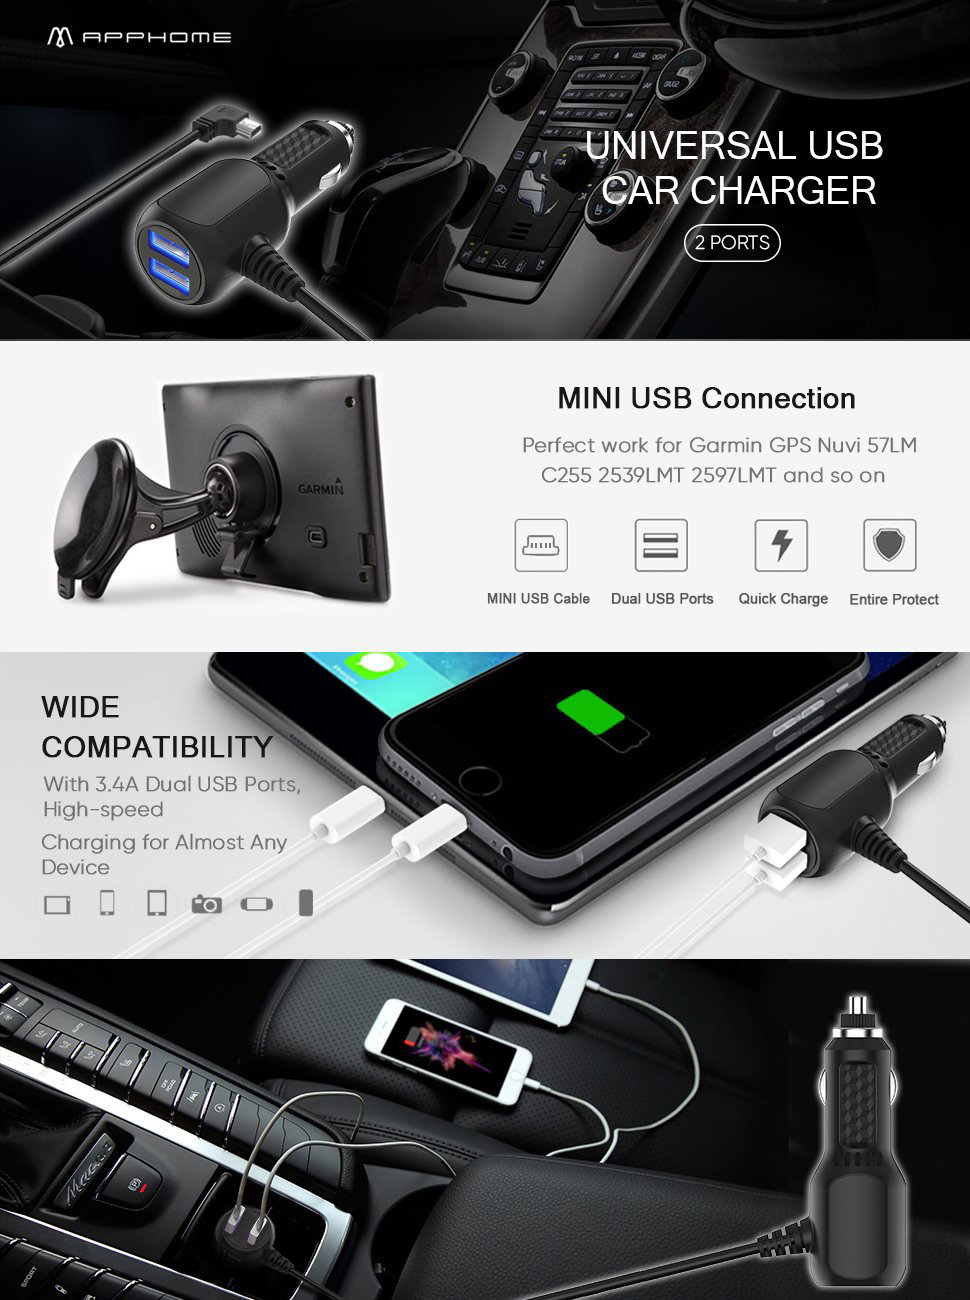 Car Charger Compatible for Garmin Nuvi, APPHOME 6.6ft Mini USB Charing on